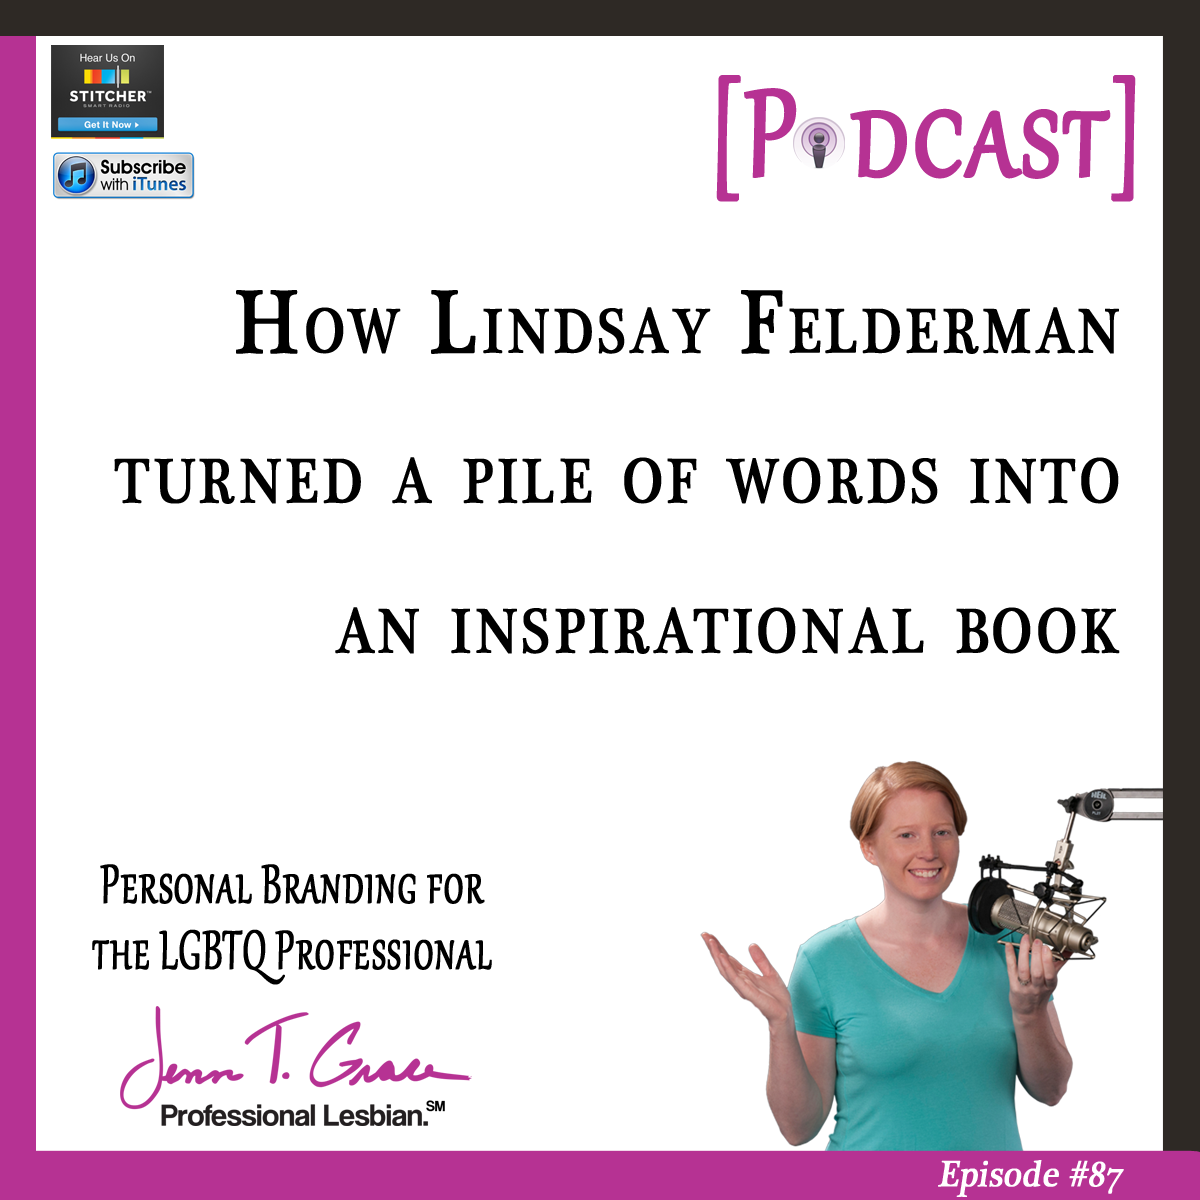 #87: How Lindsay Felderman Turned a Pile of Words Into an Inspirational Book